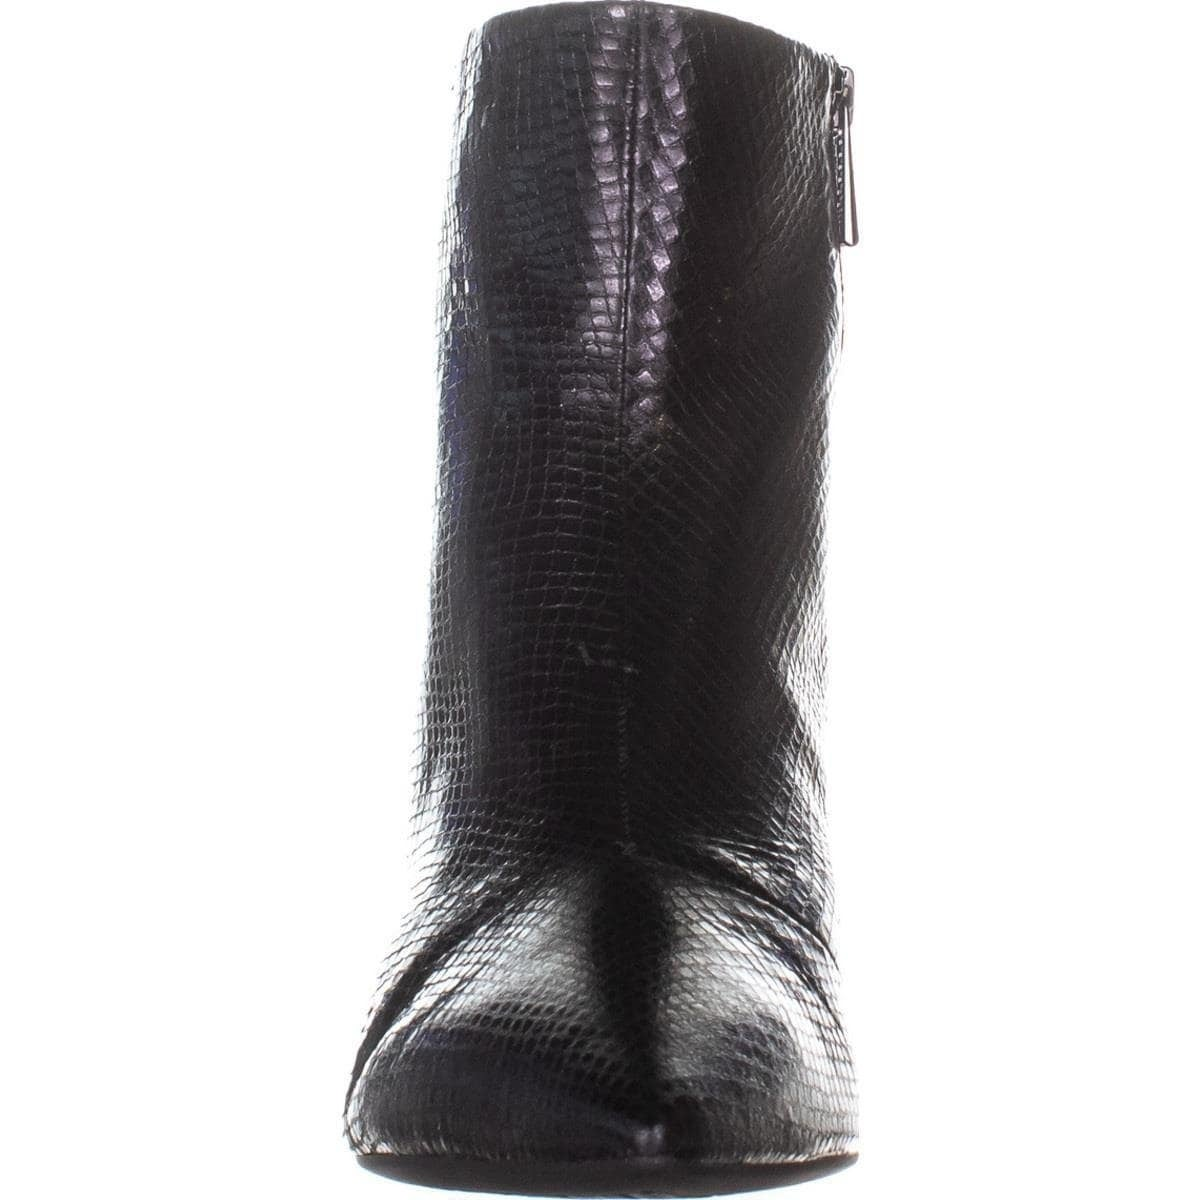 0764af31c87f Shop Michael Michael Kors Womens Blaine Flex Kitten Bootie Leather Pointed  Toe Ank... - 7 - Free Shipping Today - Overstock - 27674591